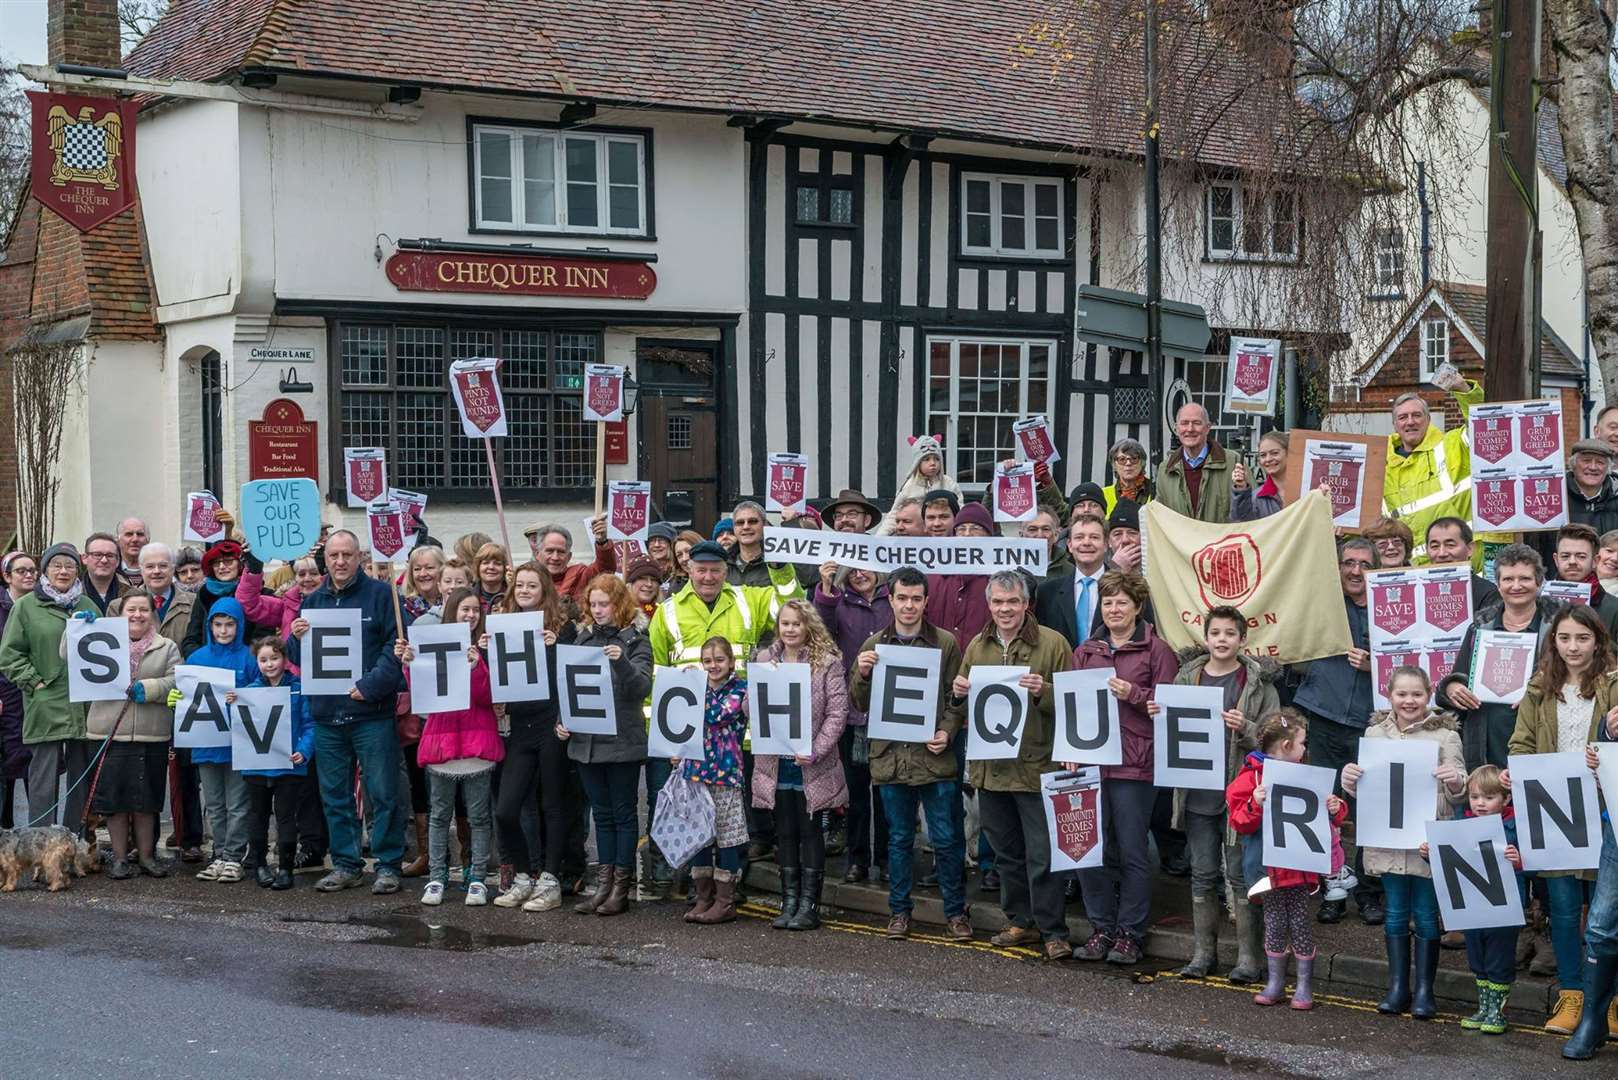 The continuing campaign to save the Chequer Inn. Demonstrators in 2016 when it was saved from housing. Picture courtesy of Matthew Titterton.